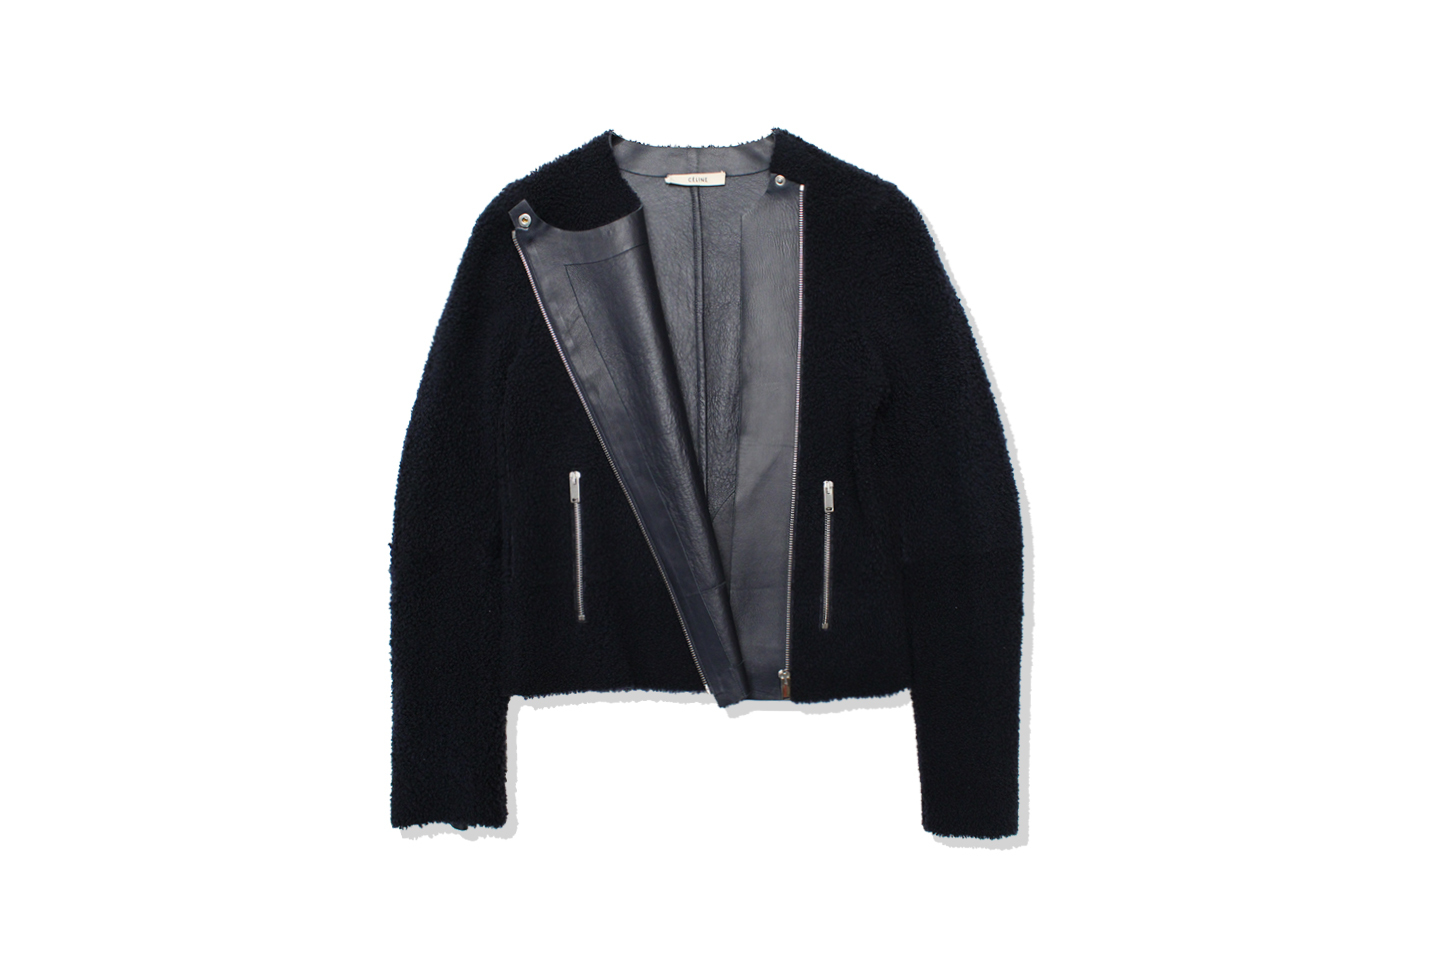 Phoebe Philo's CÉLINE Lamb Leather Riders Jacket